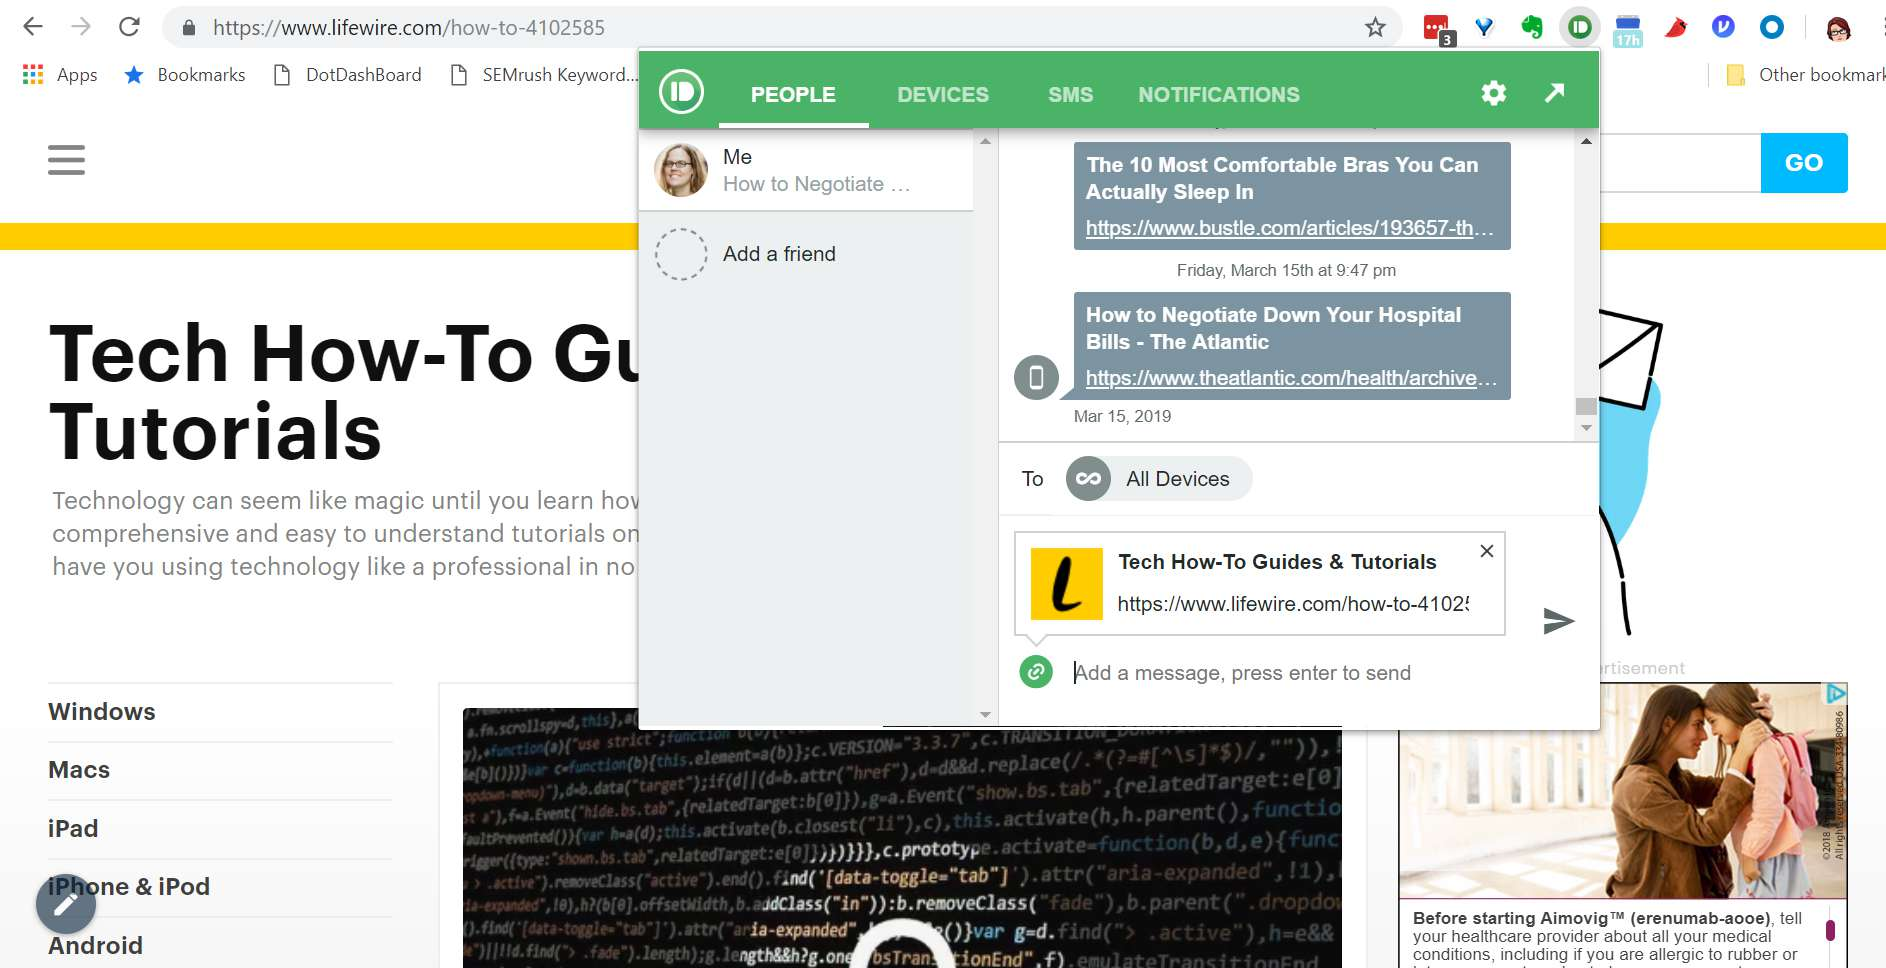 Pushbullet Chrome plug-in